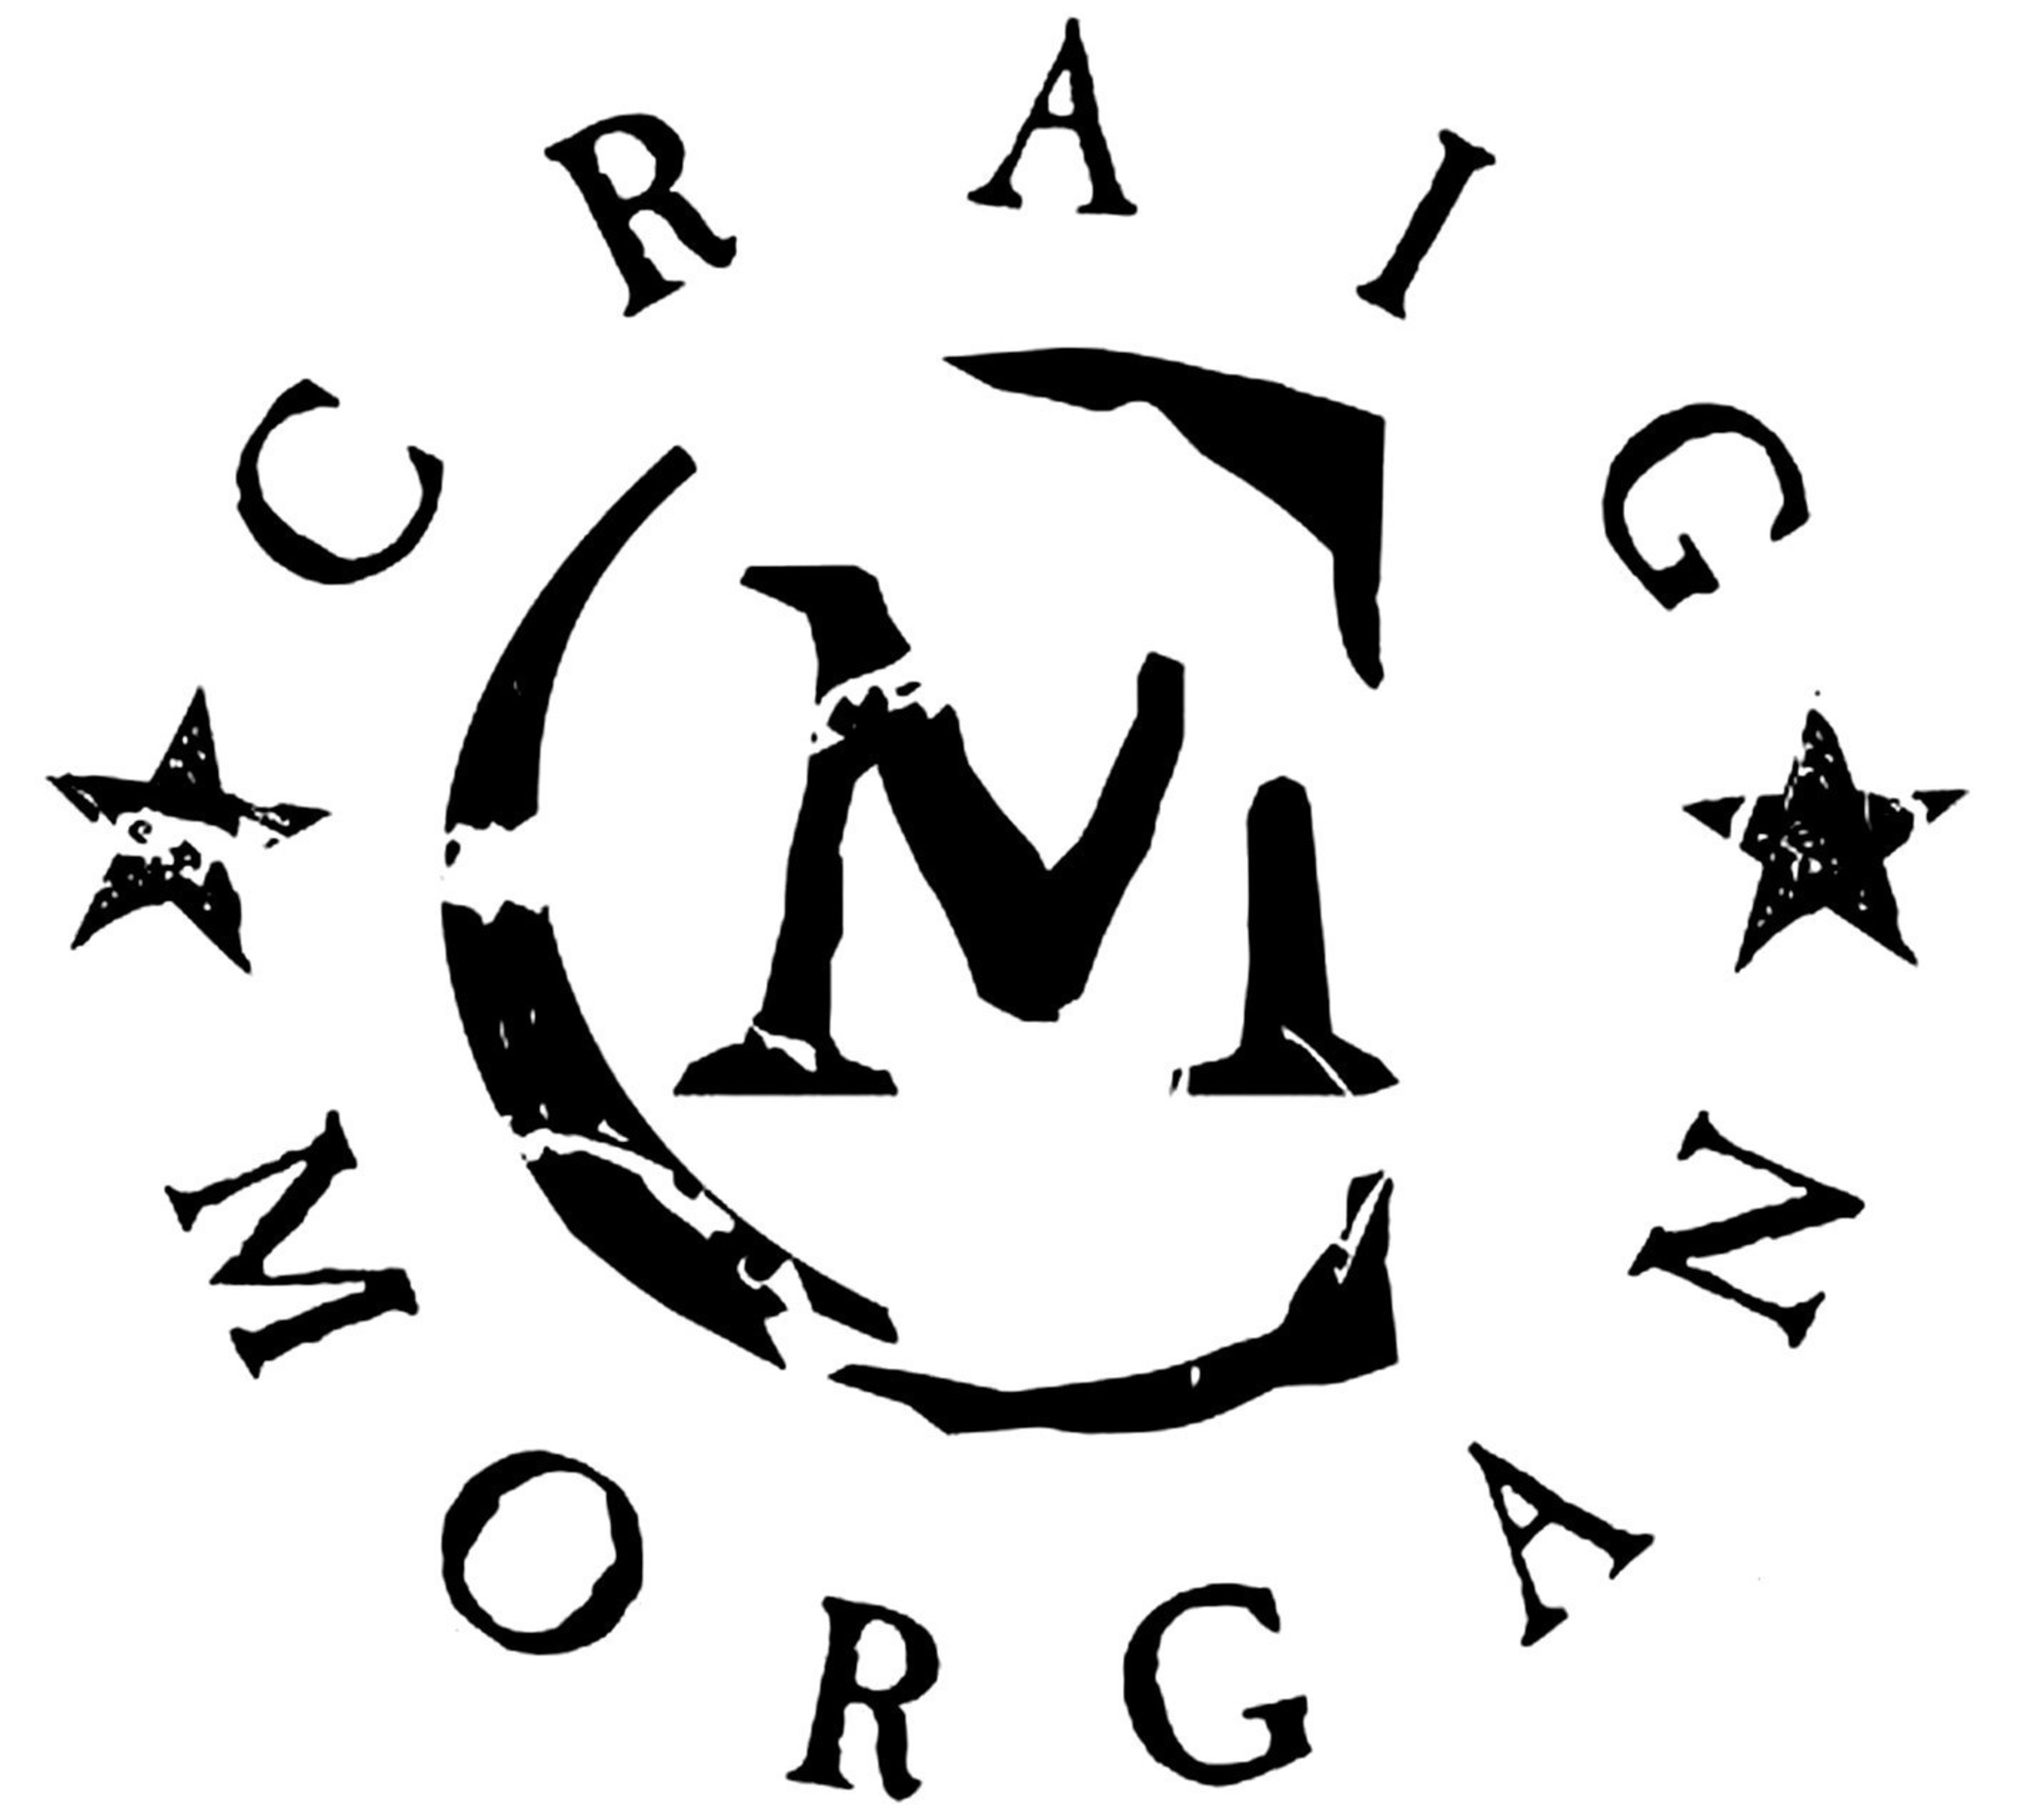 As an outdoorsman, off-roader, dirtbike rider, combat veteran with the 101st and 82nd Airborne Divisions and a fan of stylishly customized vehicles - Craig Morgan is a living symbol of what the LINE-X brand stands for.